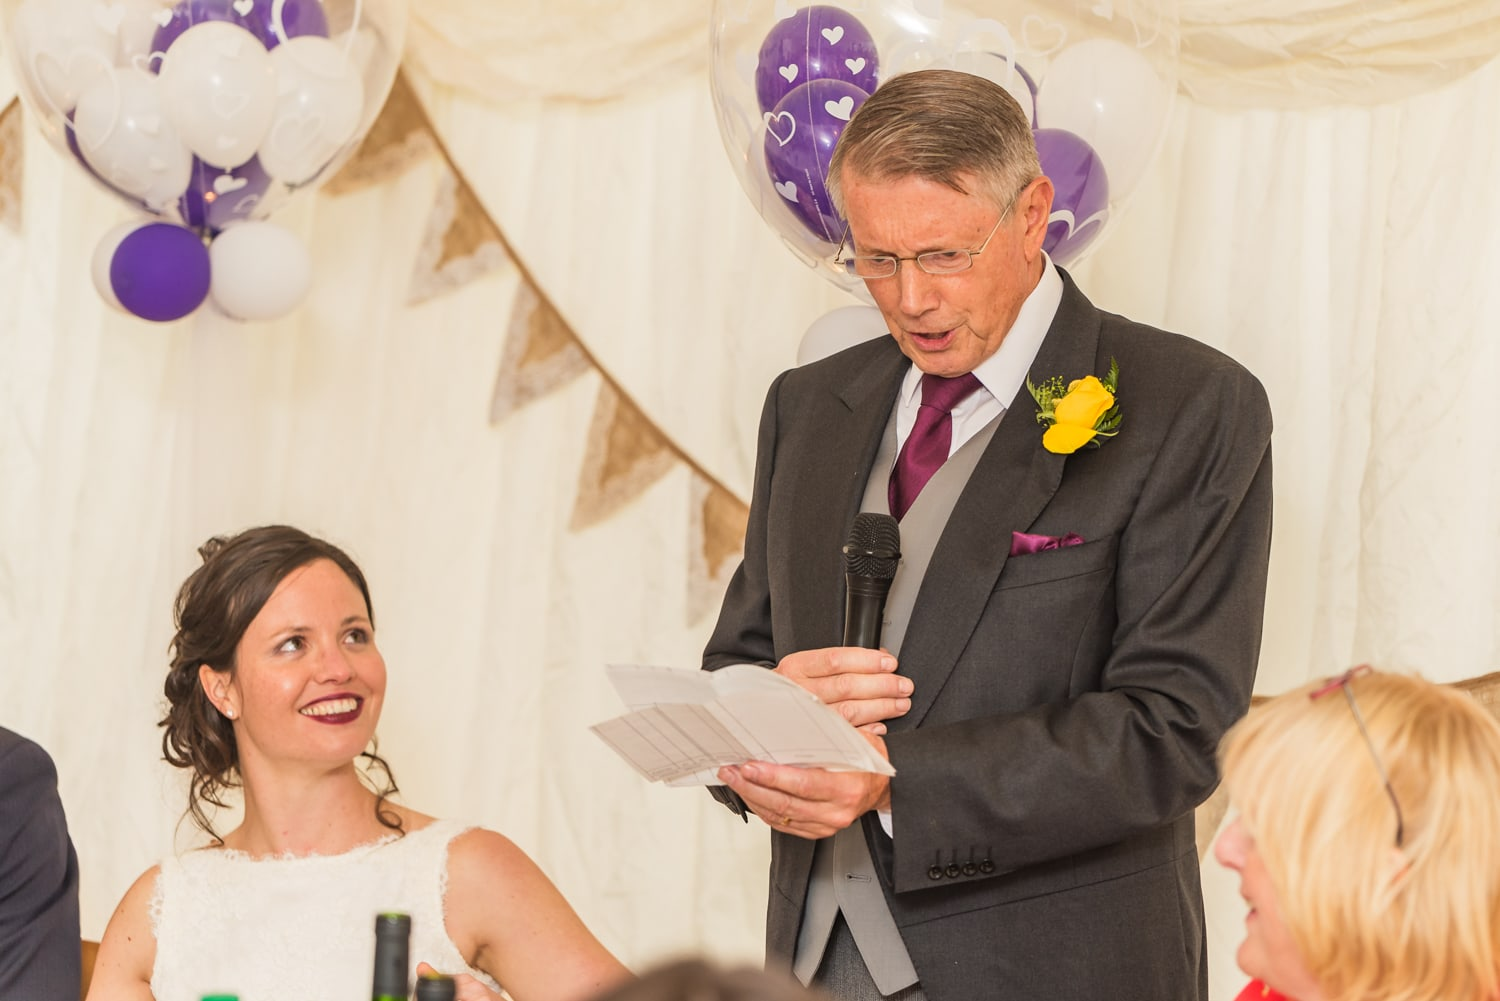 090-father-of-bride-speech-2_1.jpg